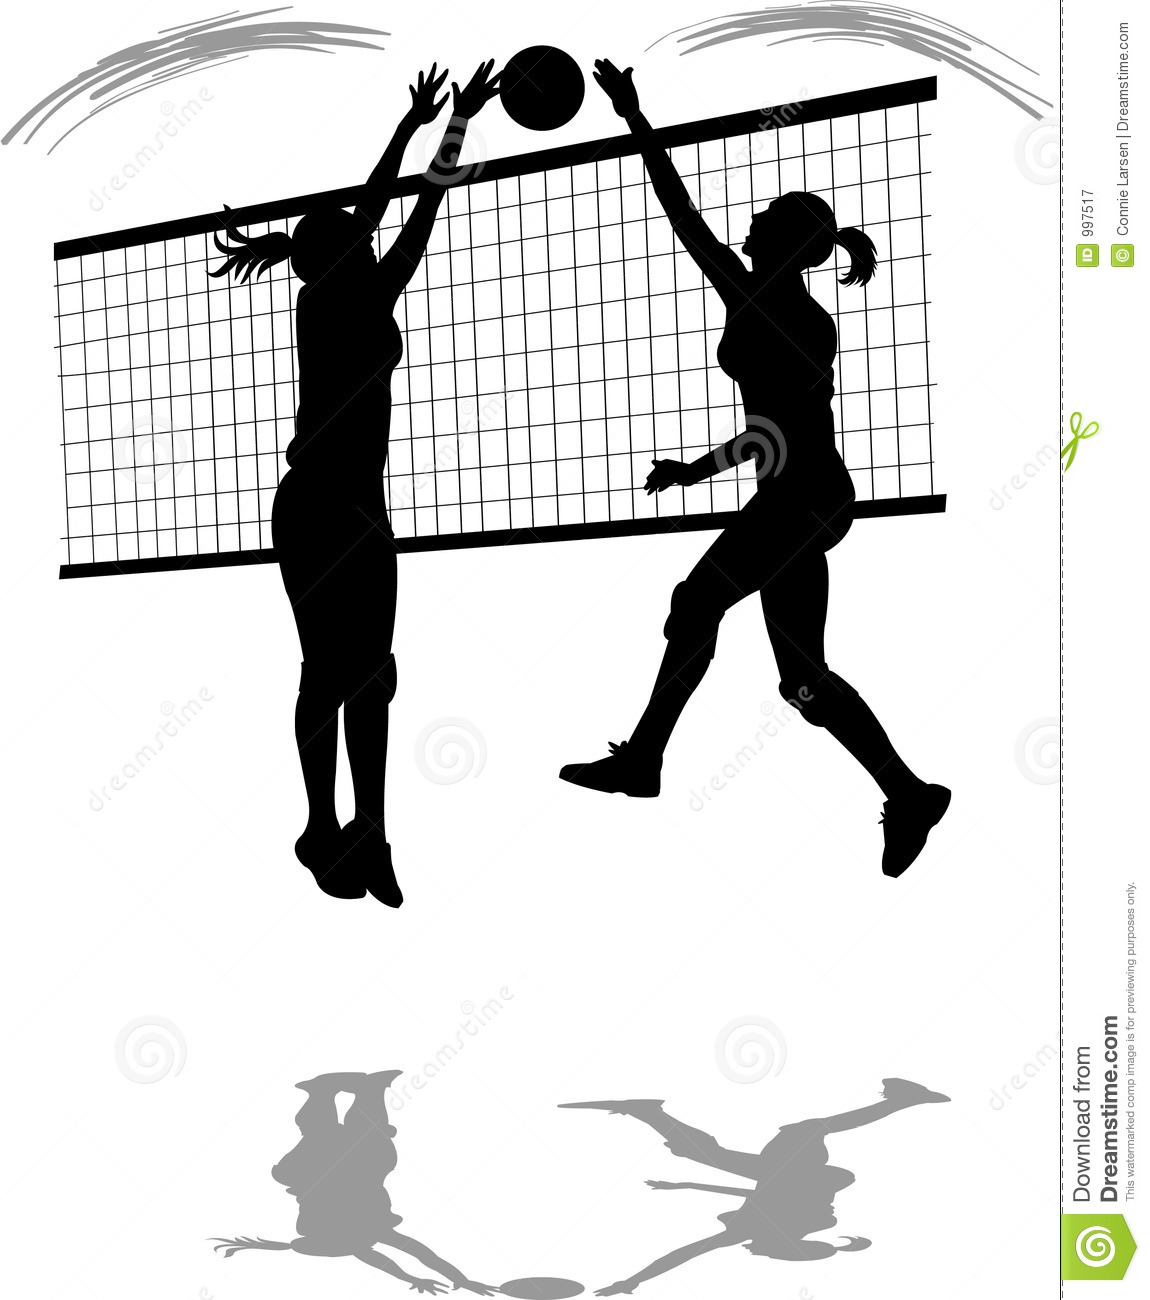 Volleyball Spike/Block Royalty Free Stock Photography - Image: 997517